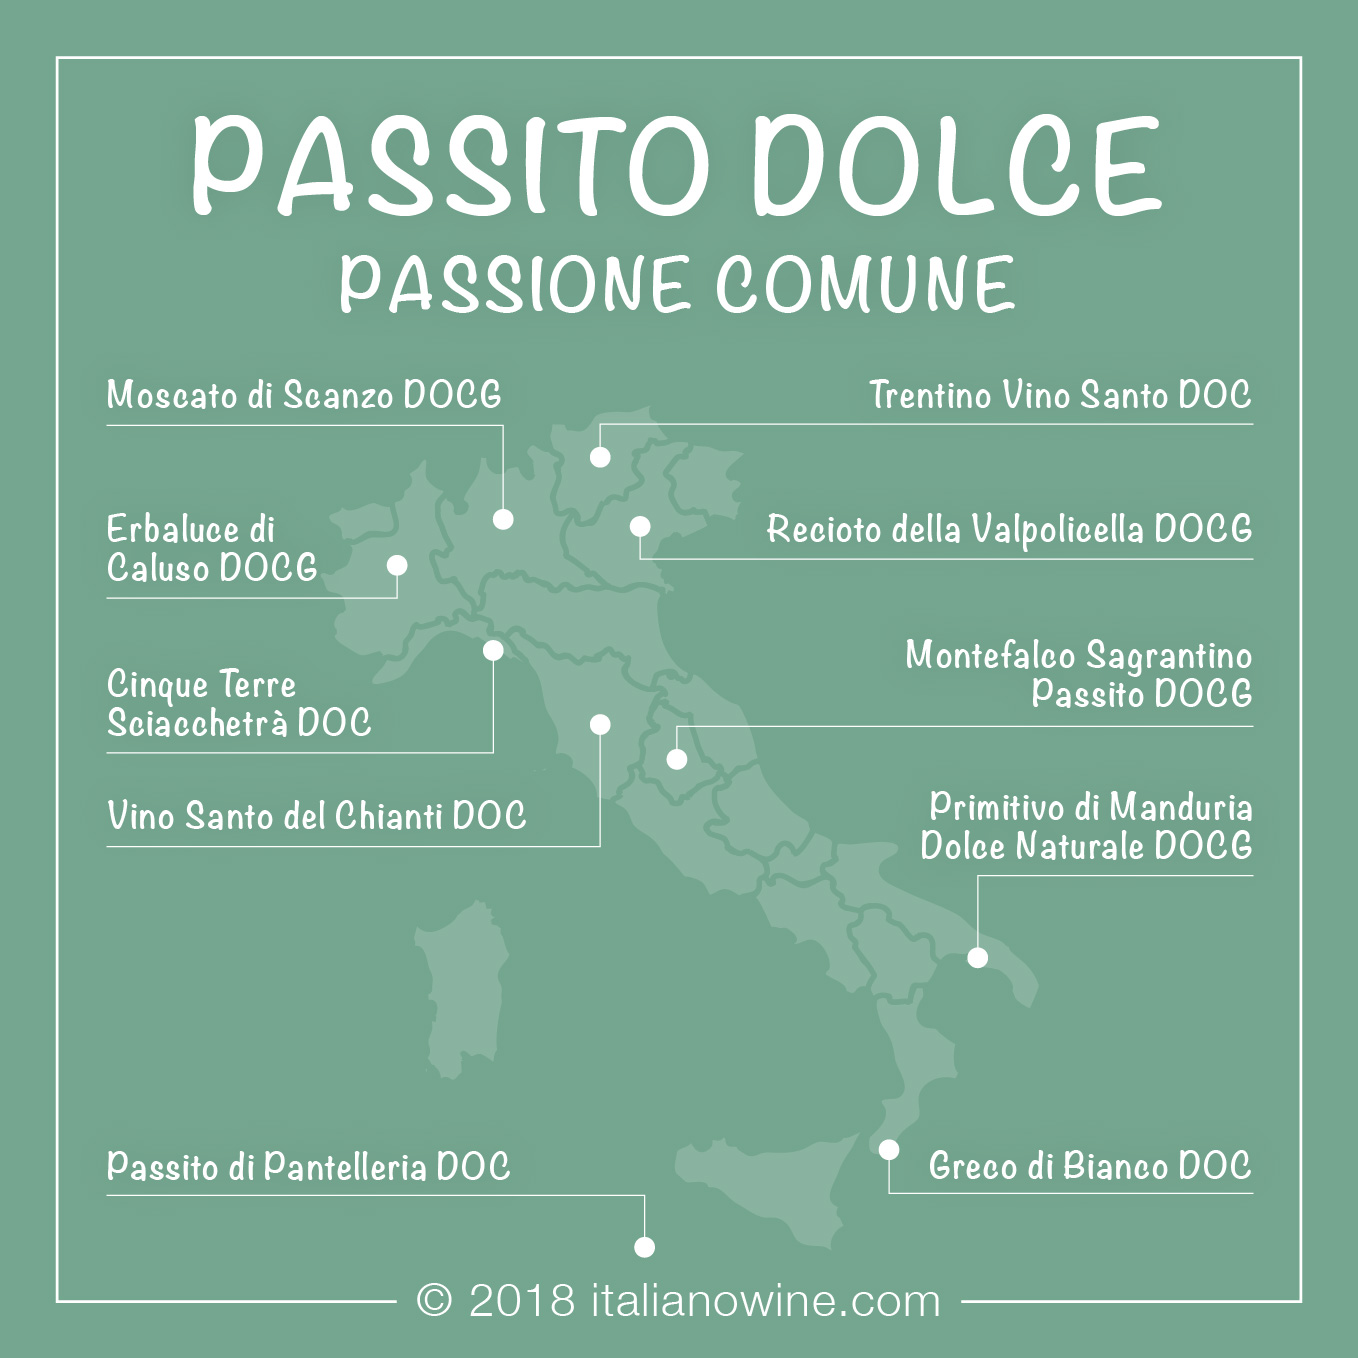 Passito dolce IT